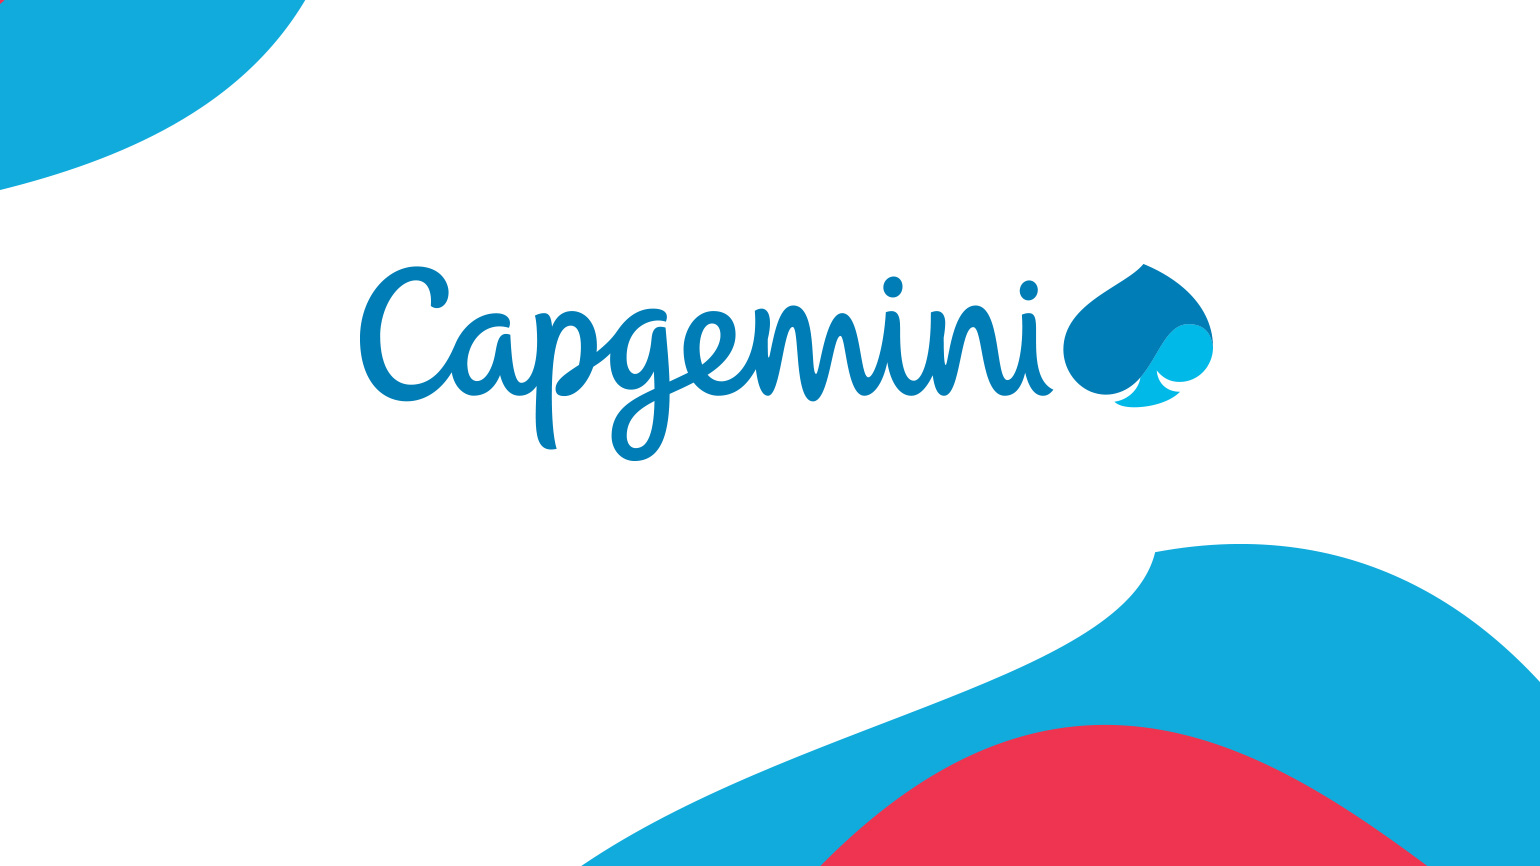 Anirban Bose is appointed Head of Capgemini's Financial Services Global Strategic Business Unit